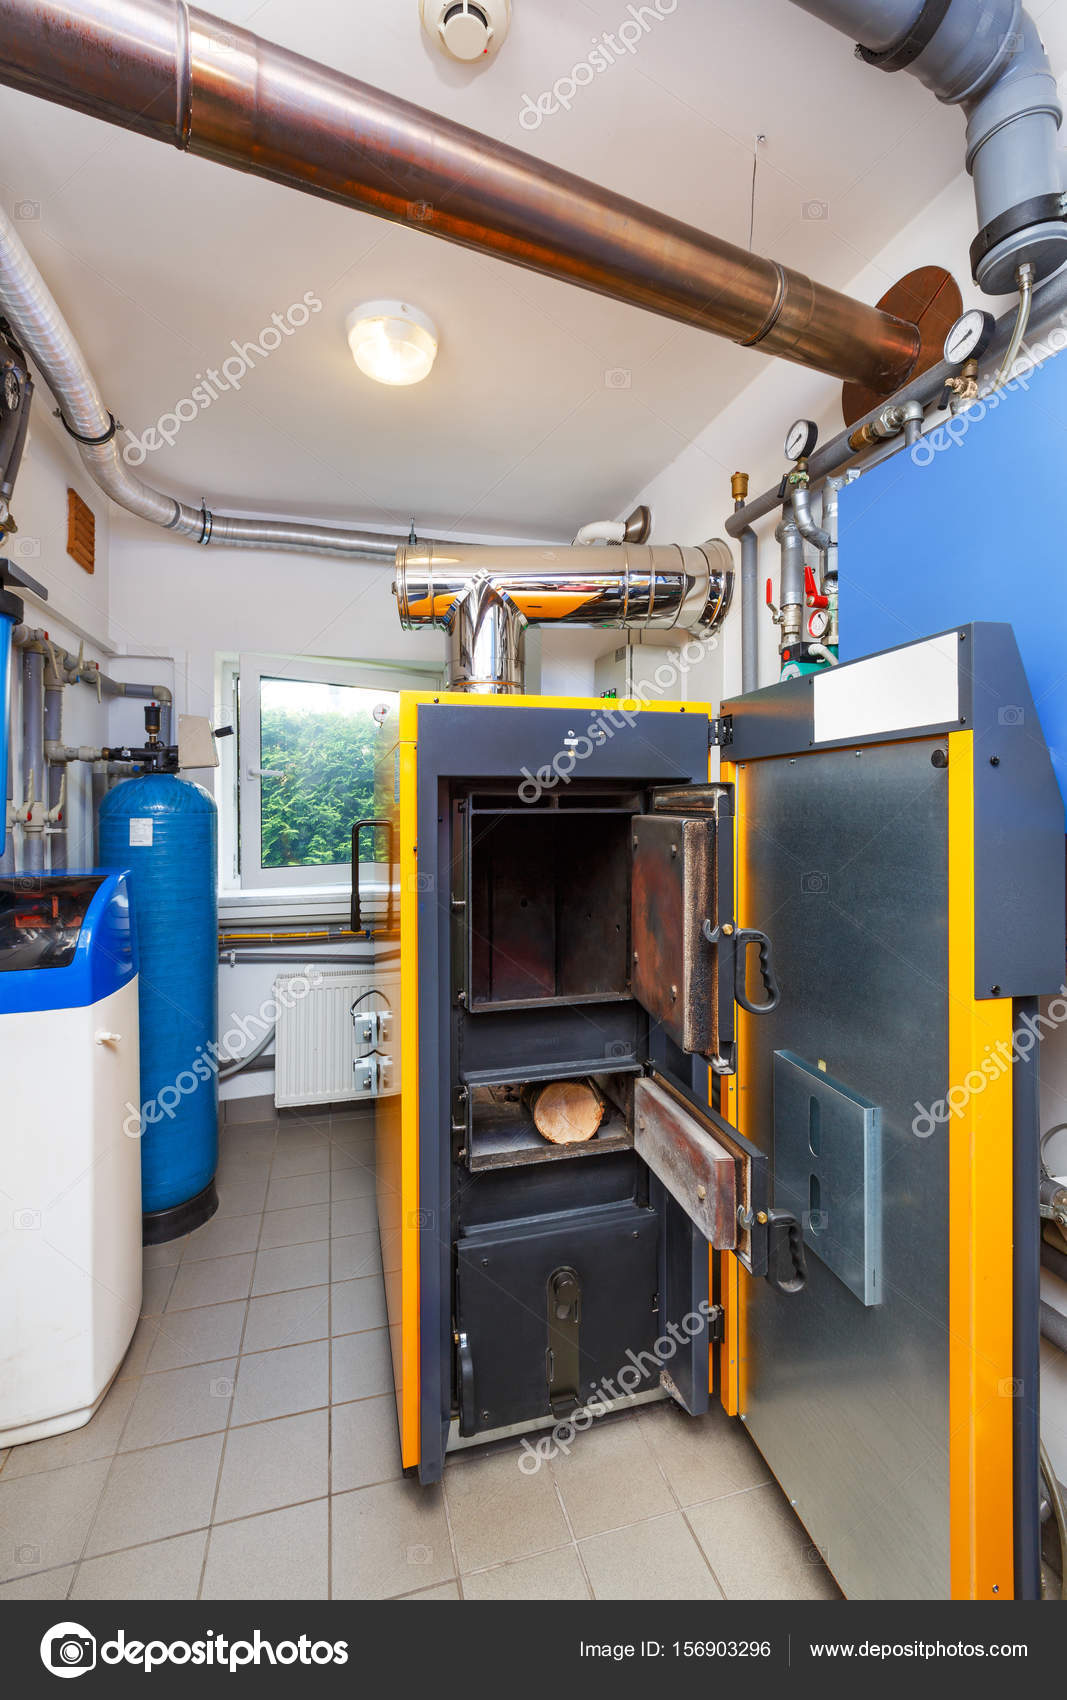 A household boiler room with a boiler on firewood, a barrel; Val ...